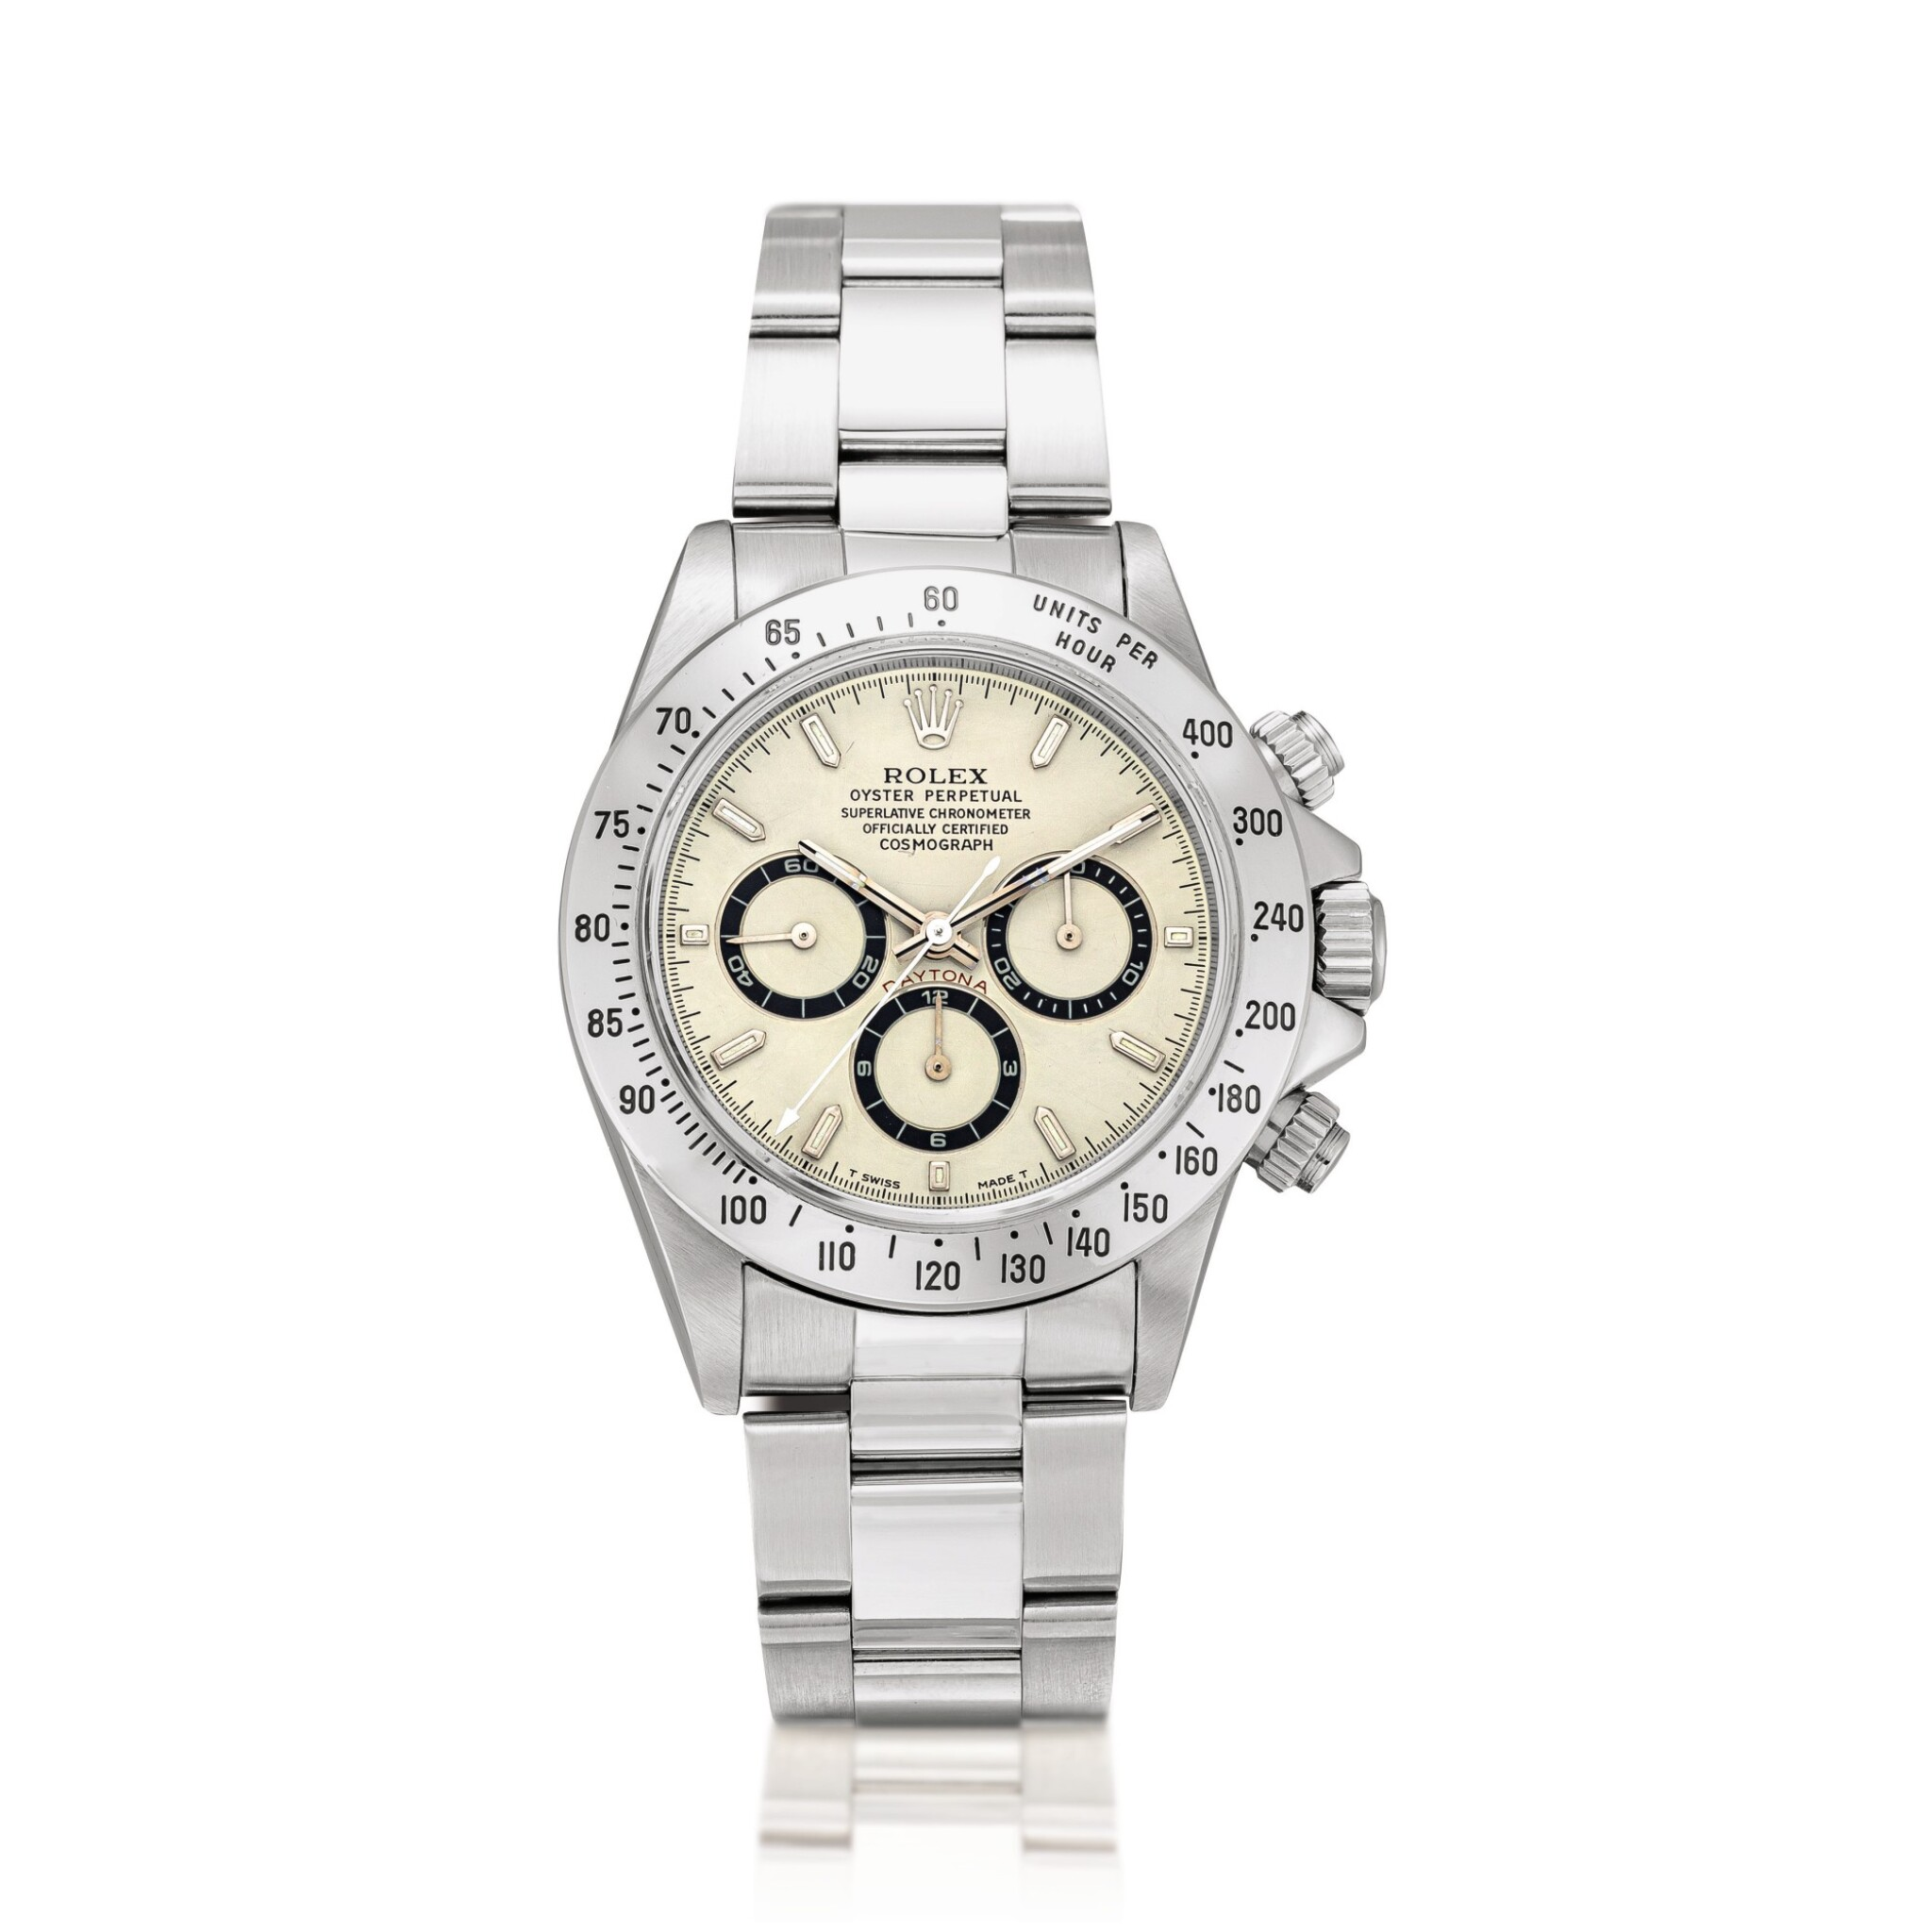 View full screen - View 1 of Lot 2152. Rolex | Cosmograph Daytona, Reference 16520, A highly unusual stainless steel chronograph wristwatch with highly unusual dial and bracelet, Circa 1995 | 勞力士 | Cosmograph Daytona 型號16520  非常罕有精鋼計時鏈帶腕錶,備罕有錶盤,約1995年製.